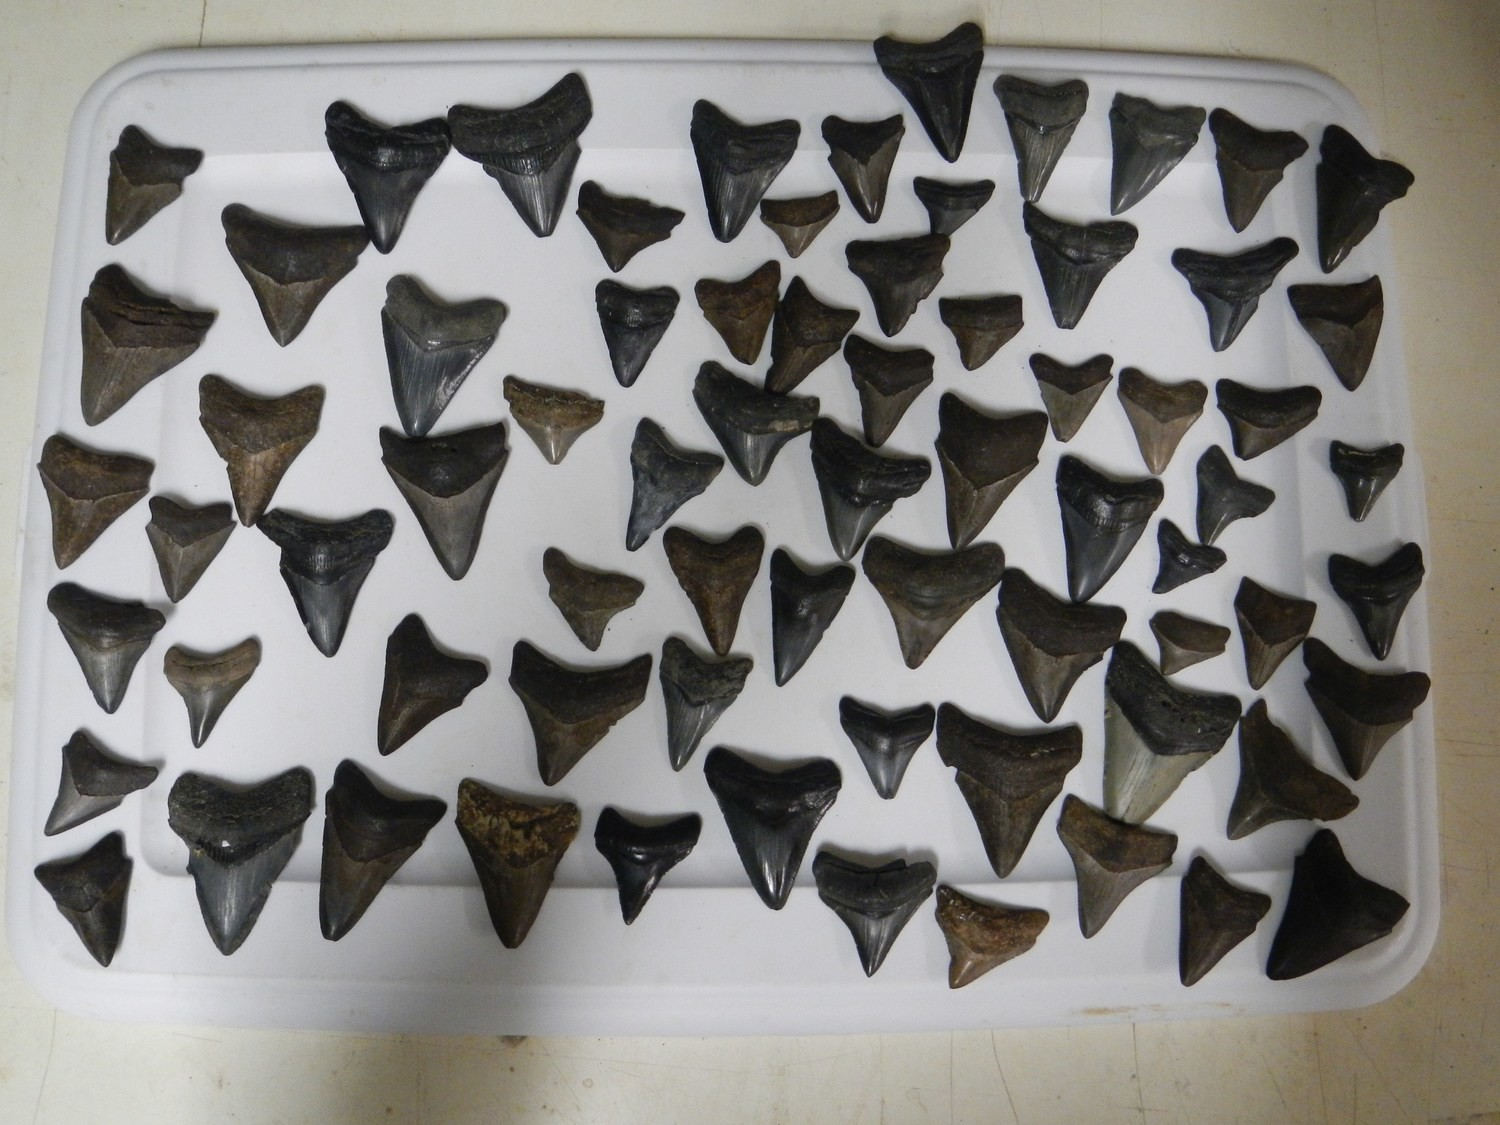 Lot of Small Megalodon Teeth